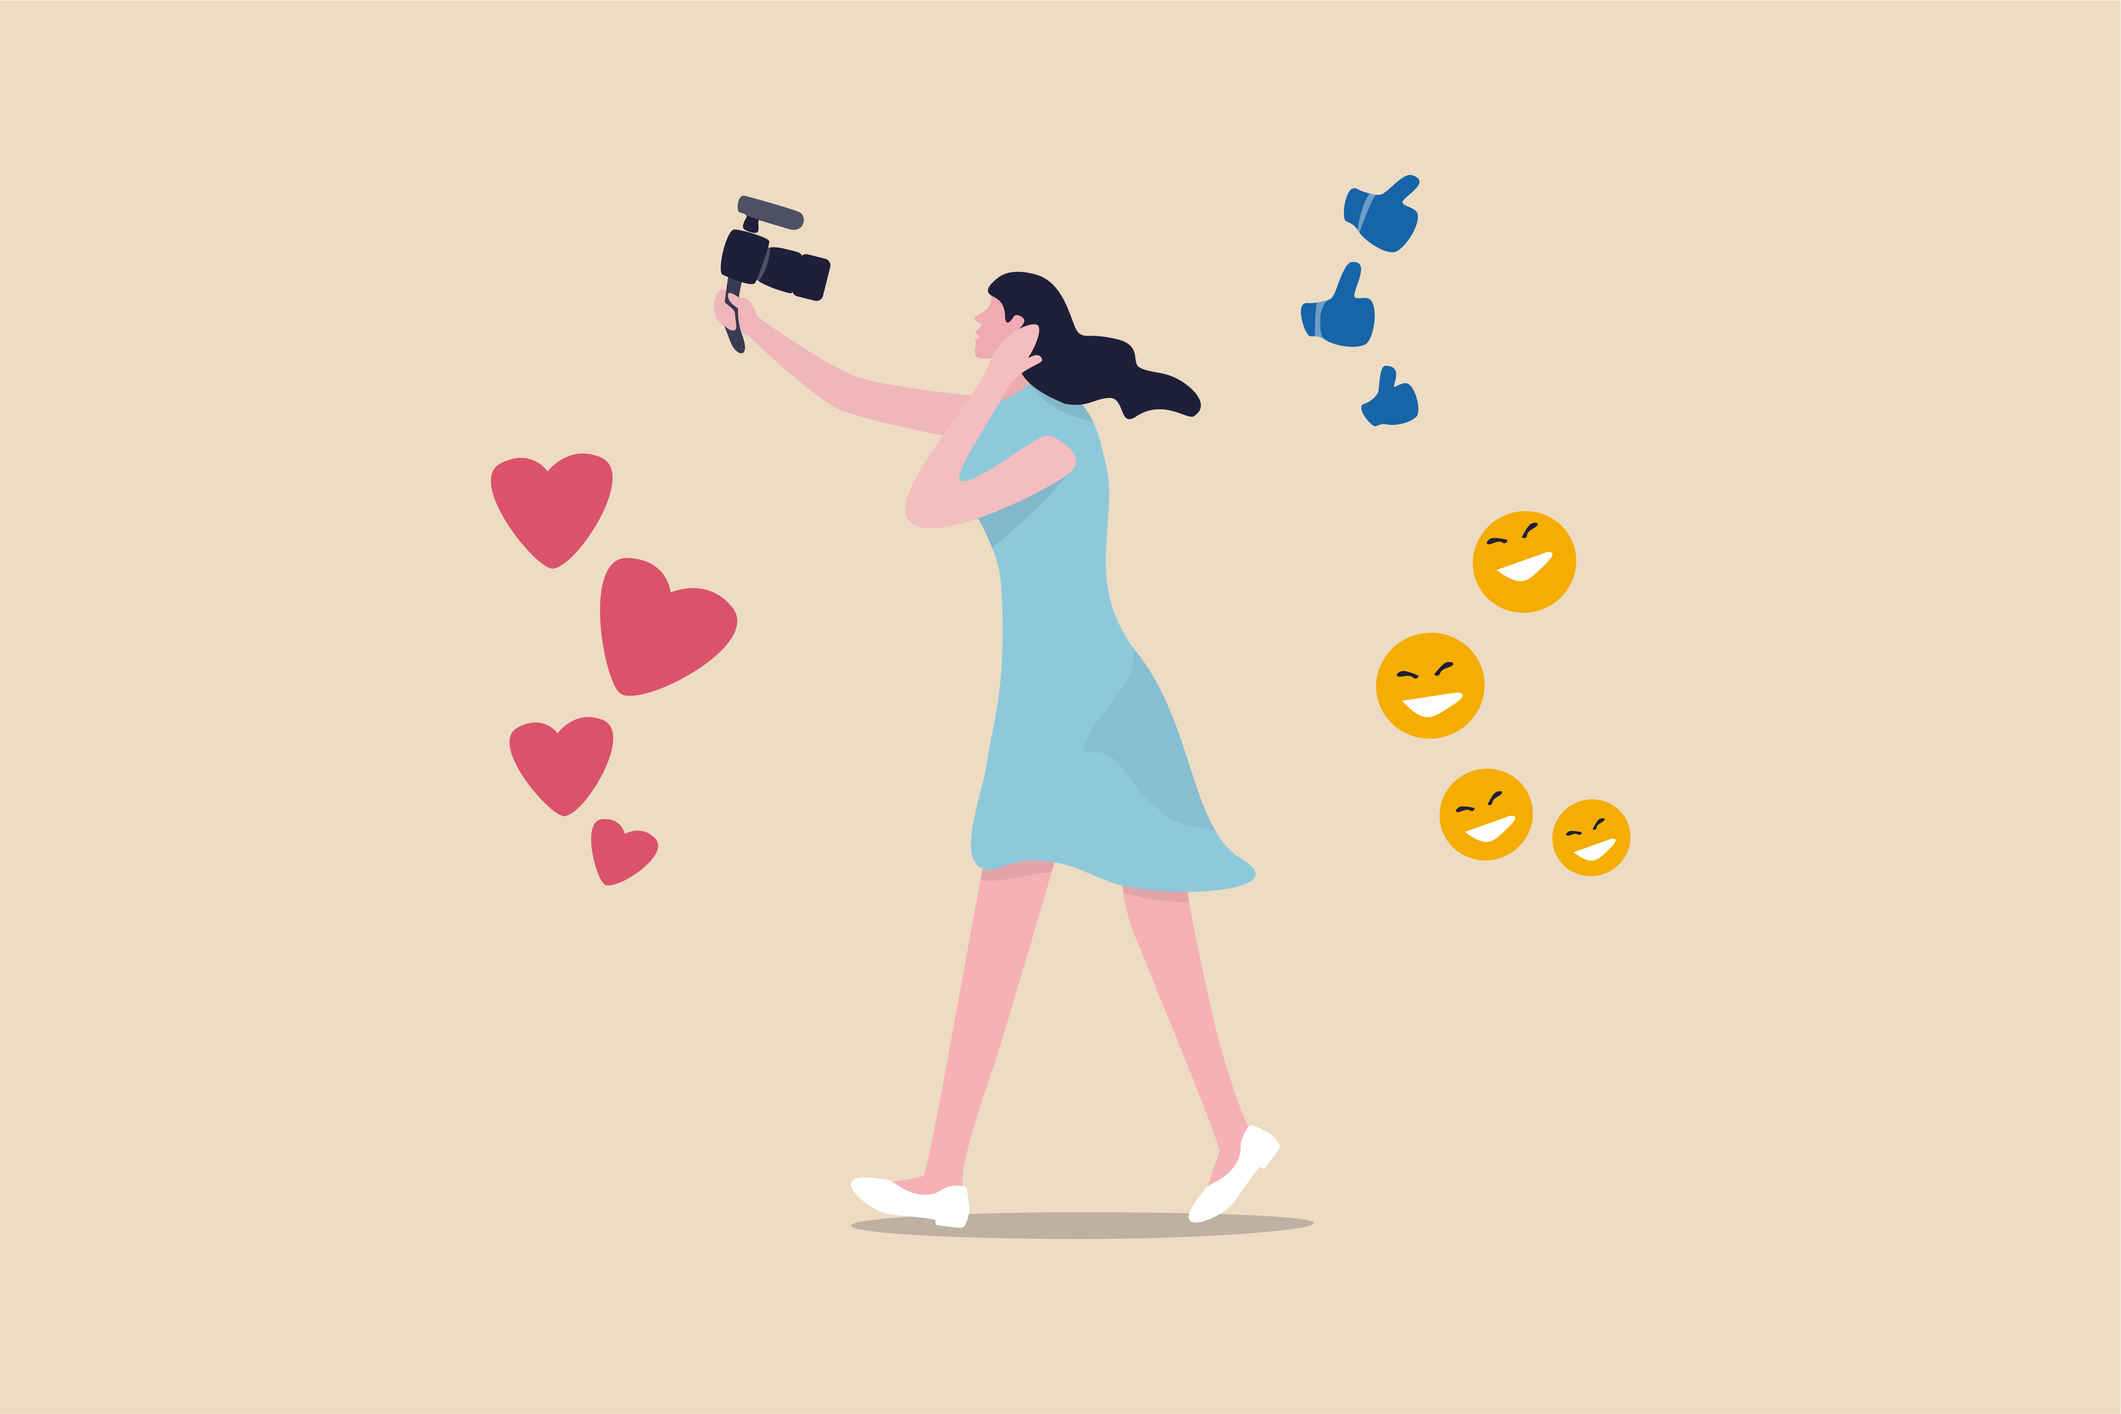 Illustration of person talking into the camera with emojis surrounding.